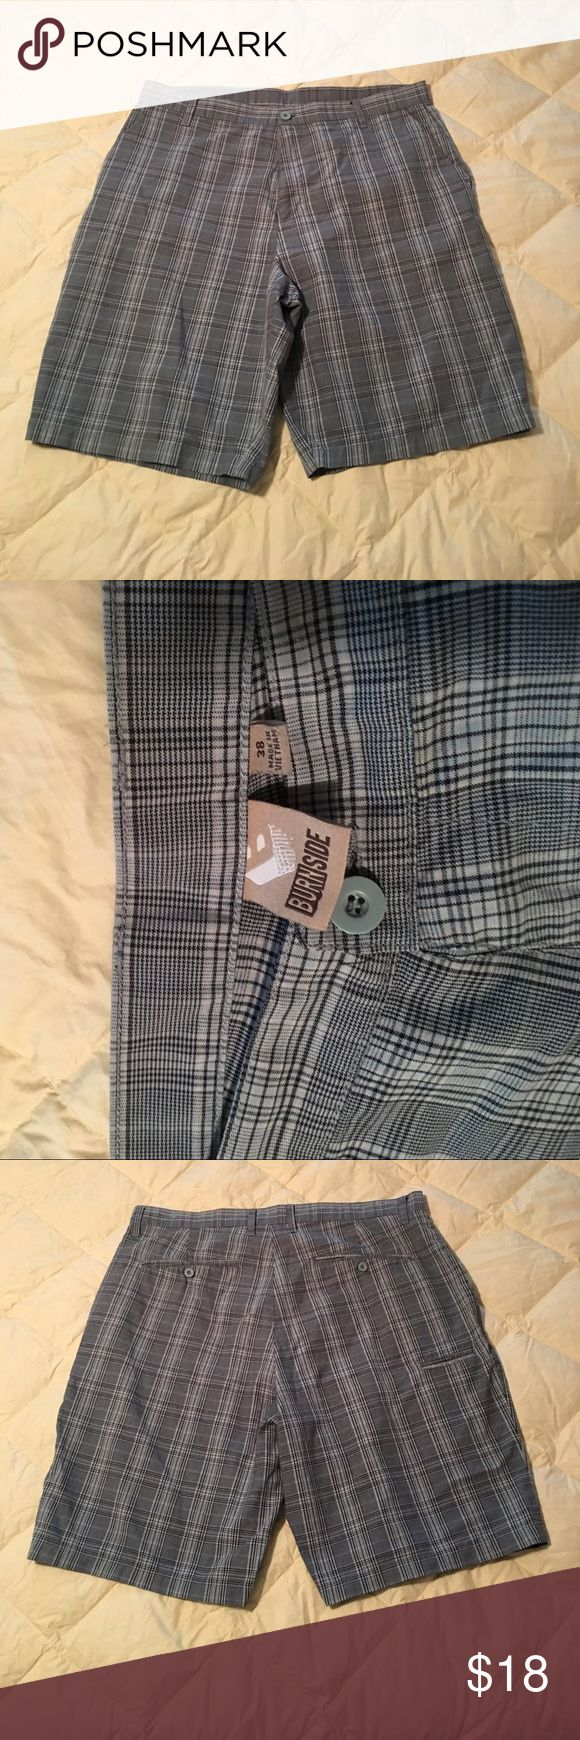 Burnside blue men's plaid shorts size 38 EUC only worn once. No stains, holes or tears visible. Burnside Shorts Flat Front